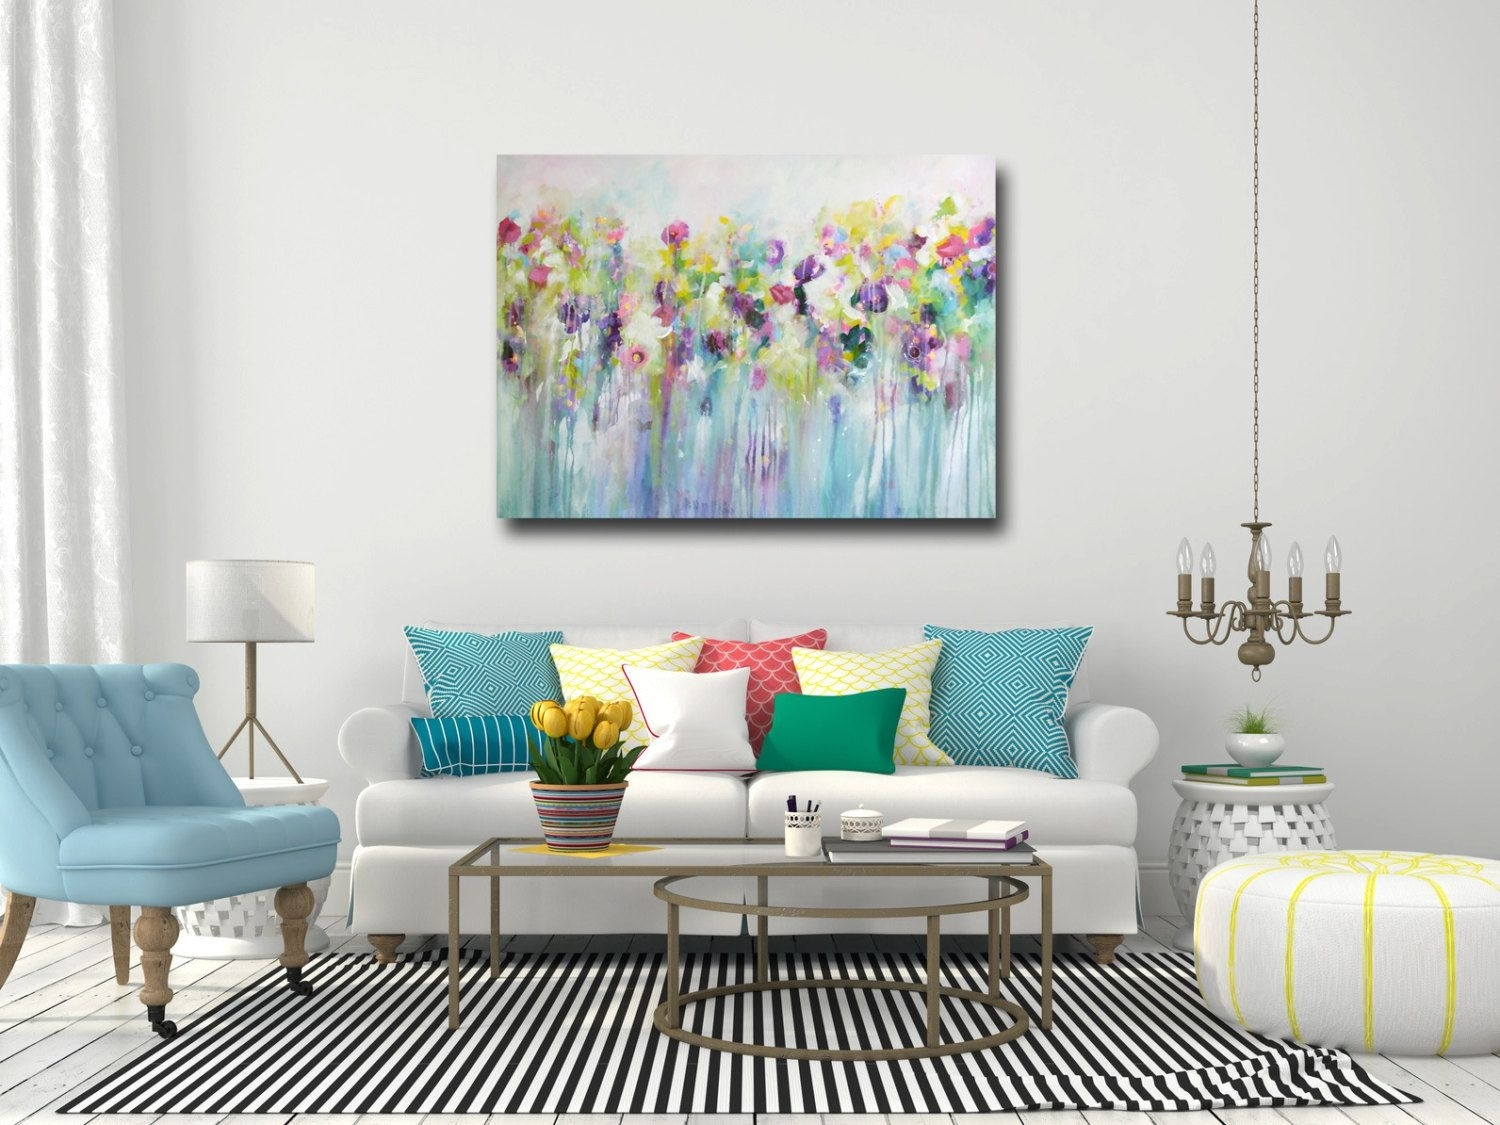 Large Wall Art, Canvas Art, Abstract Floral Canvas Print, Giclee Throughout Most Popular Abstract Floral Wall Art (Gallery 5 of 20)